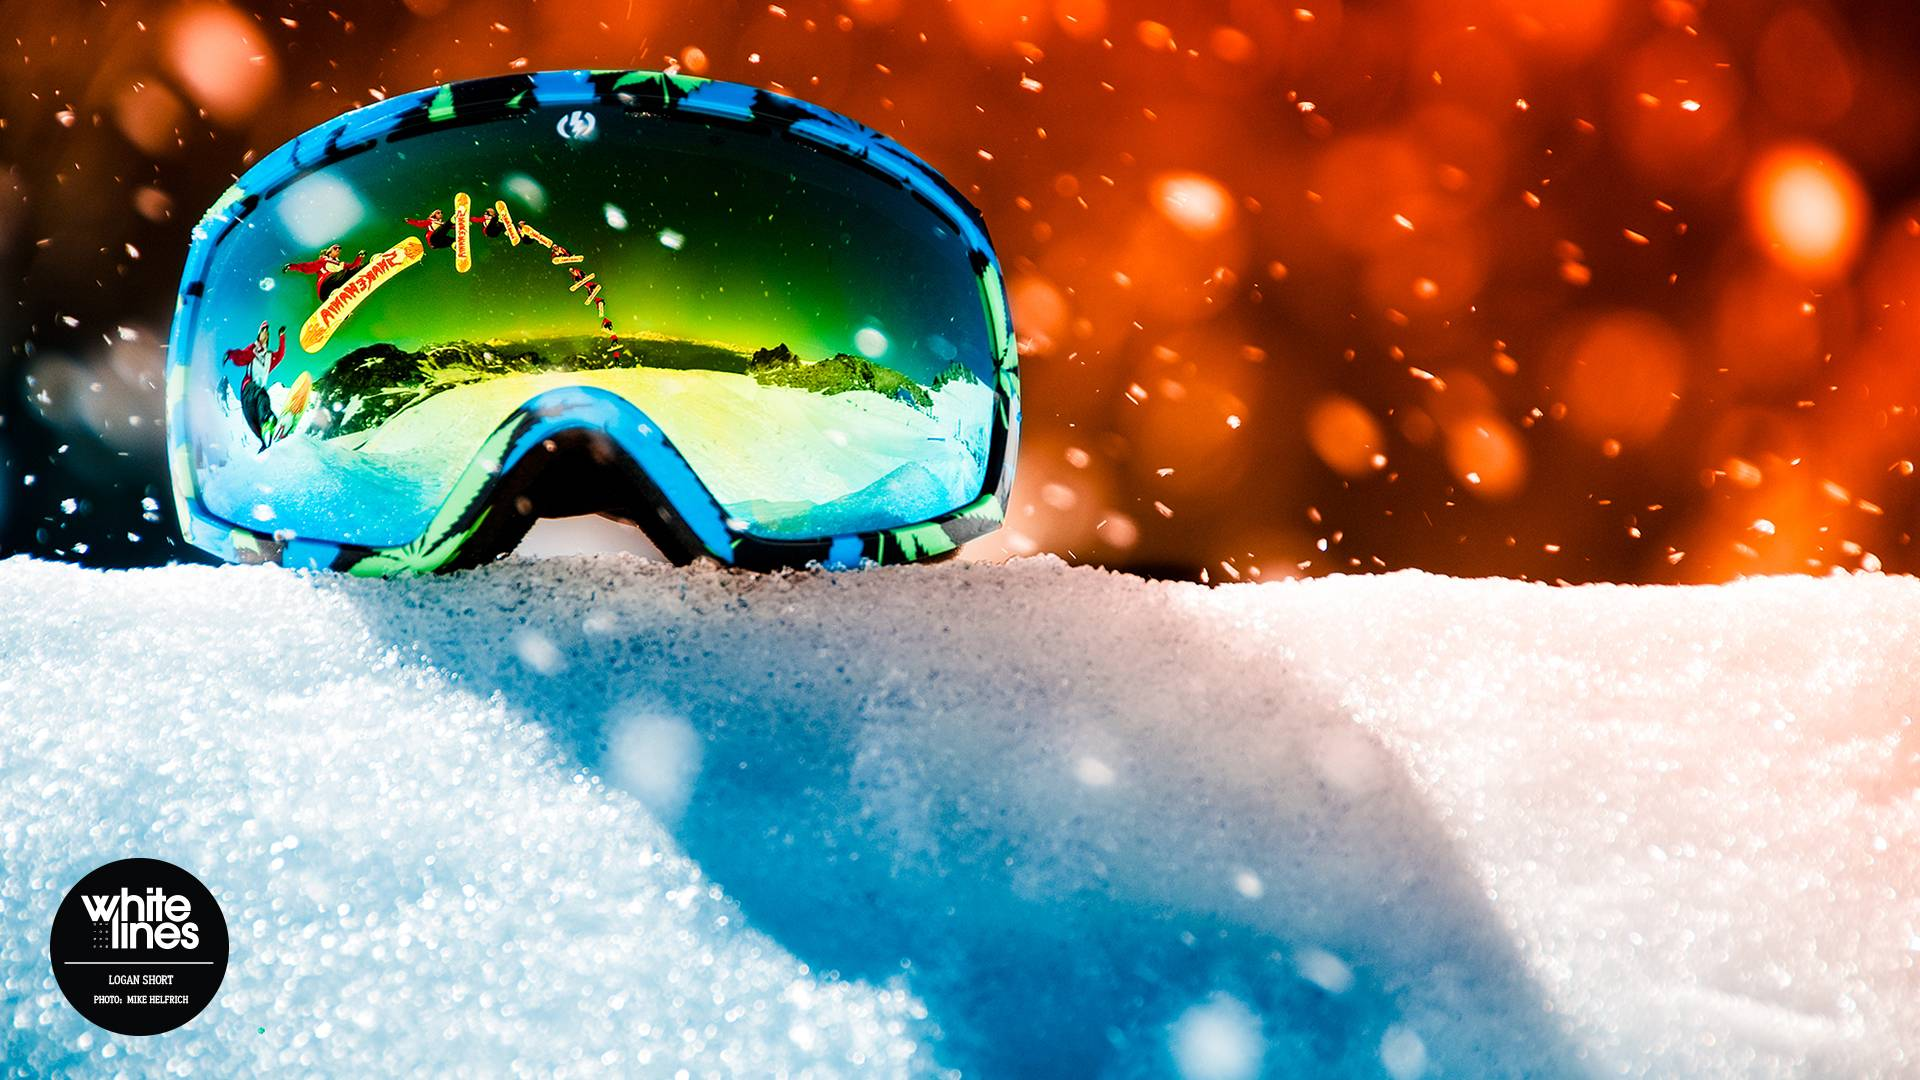 snowboard outdoor wallpaper desktop - photo #32